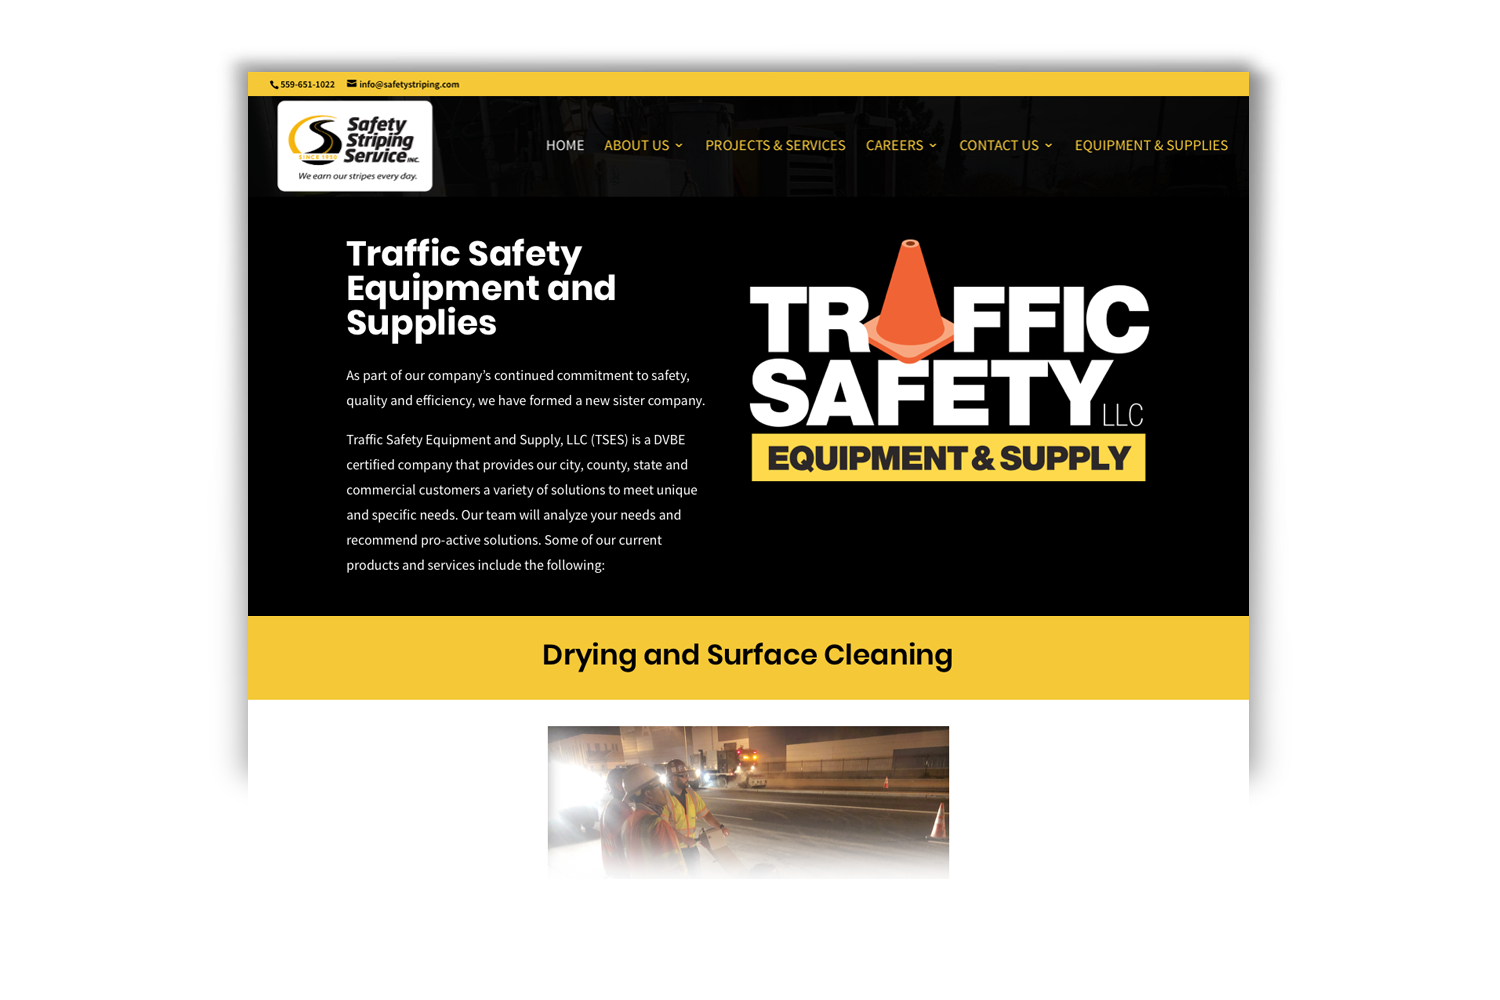 Safety Striping Service Website, Equipment page by DMI Agency_branding update and new website